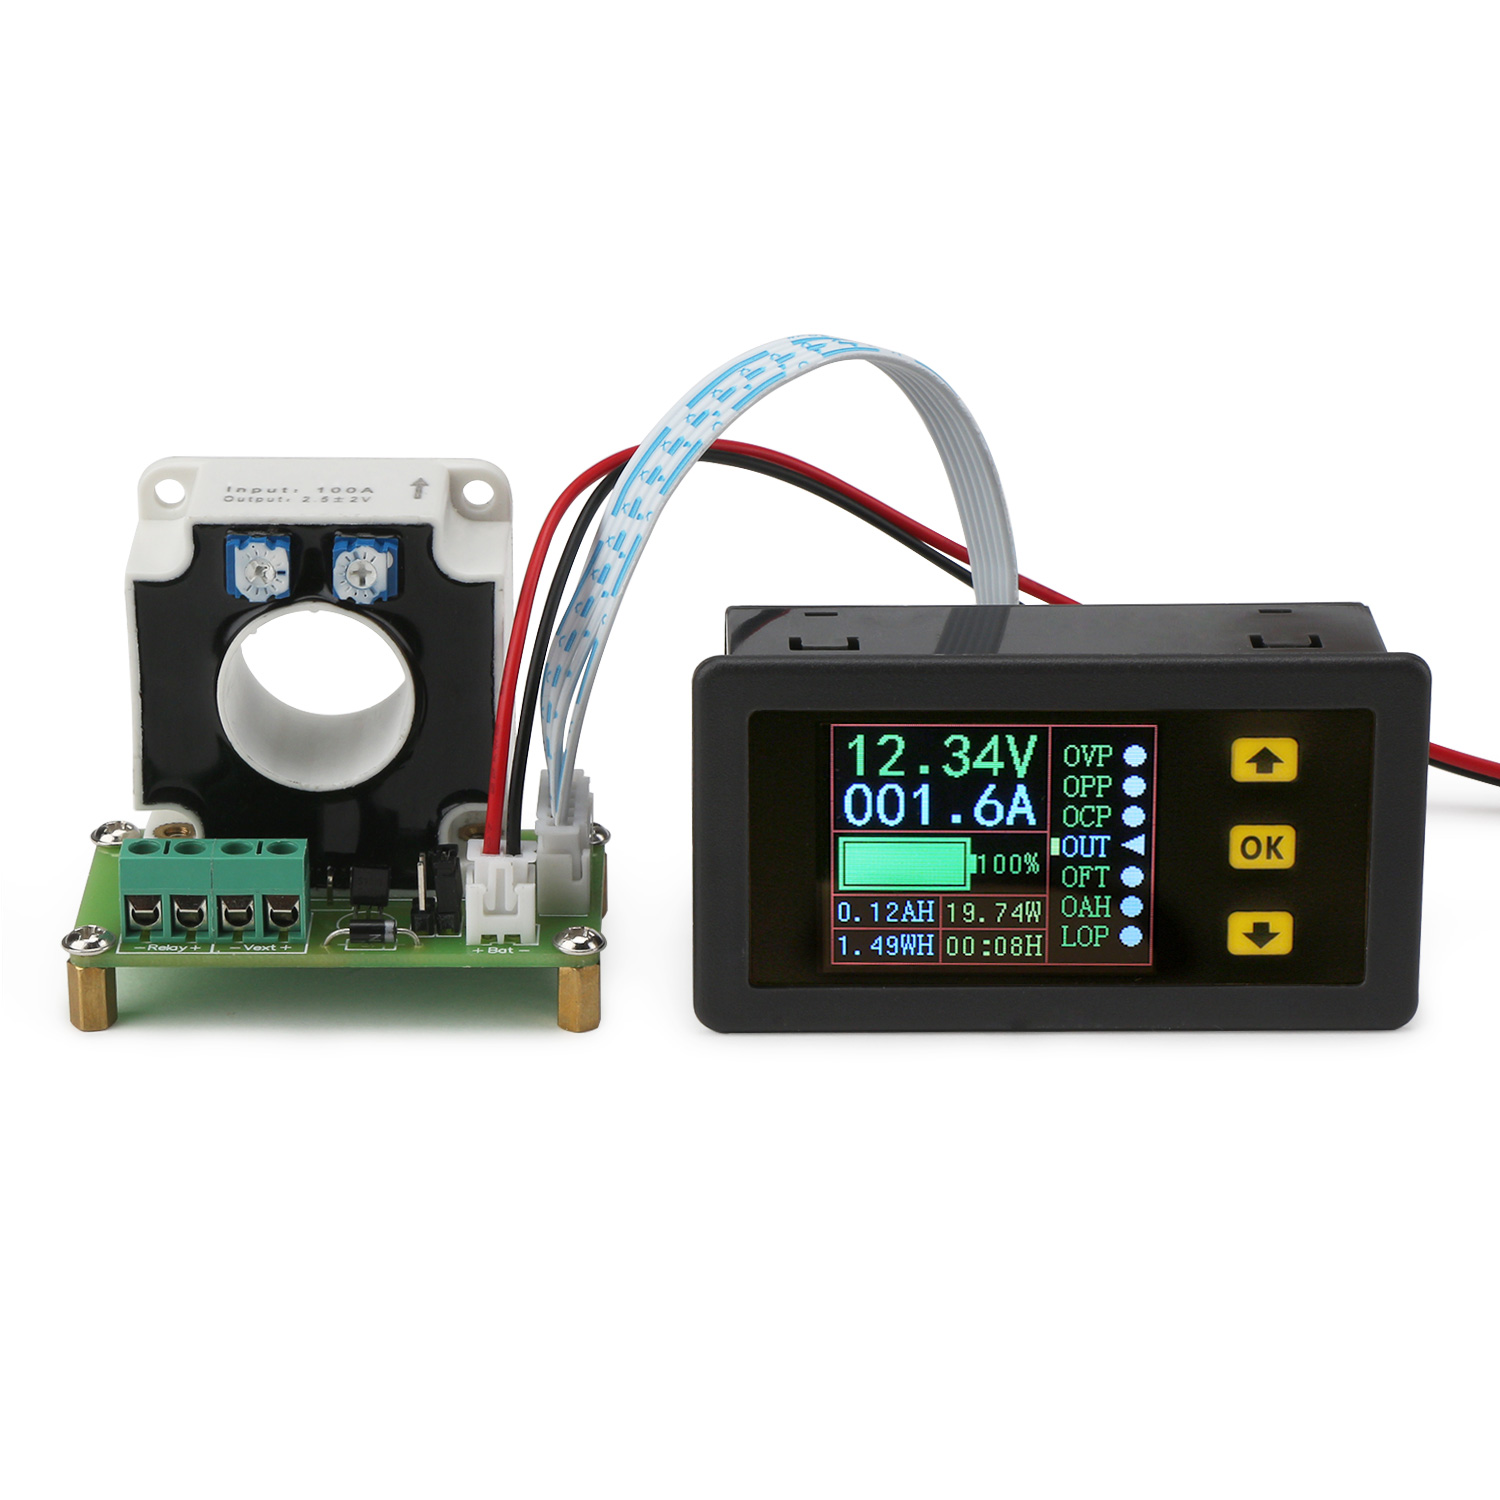 Digital Tester Dc 1090 V 100a Multifunction Voltage Current 10 Wiring Diagram Capacity Power Coulometry Time Display